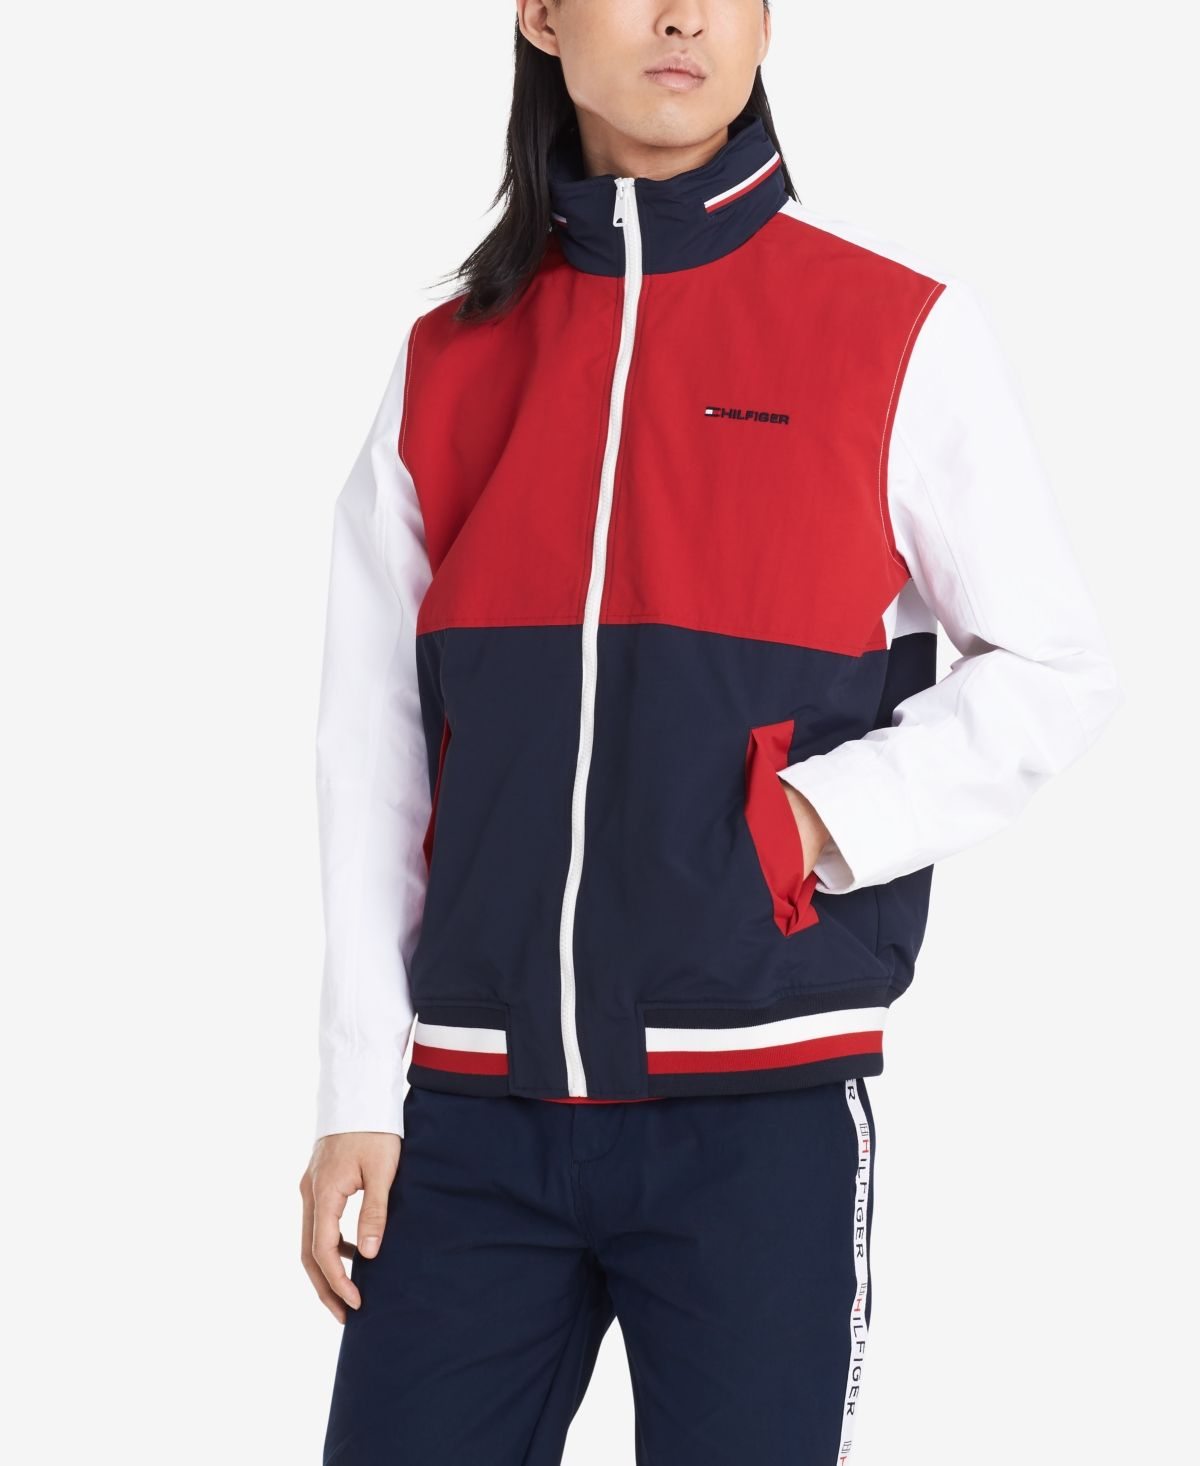 Pin By Kirlipundel On Tommy Hilfiger Tommy Hilfiger Man Tommy Hilfiger Outerwear Jackets [ 1466 x 1200 Pixel ]